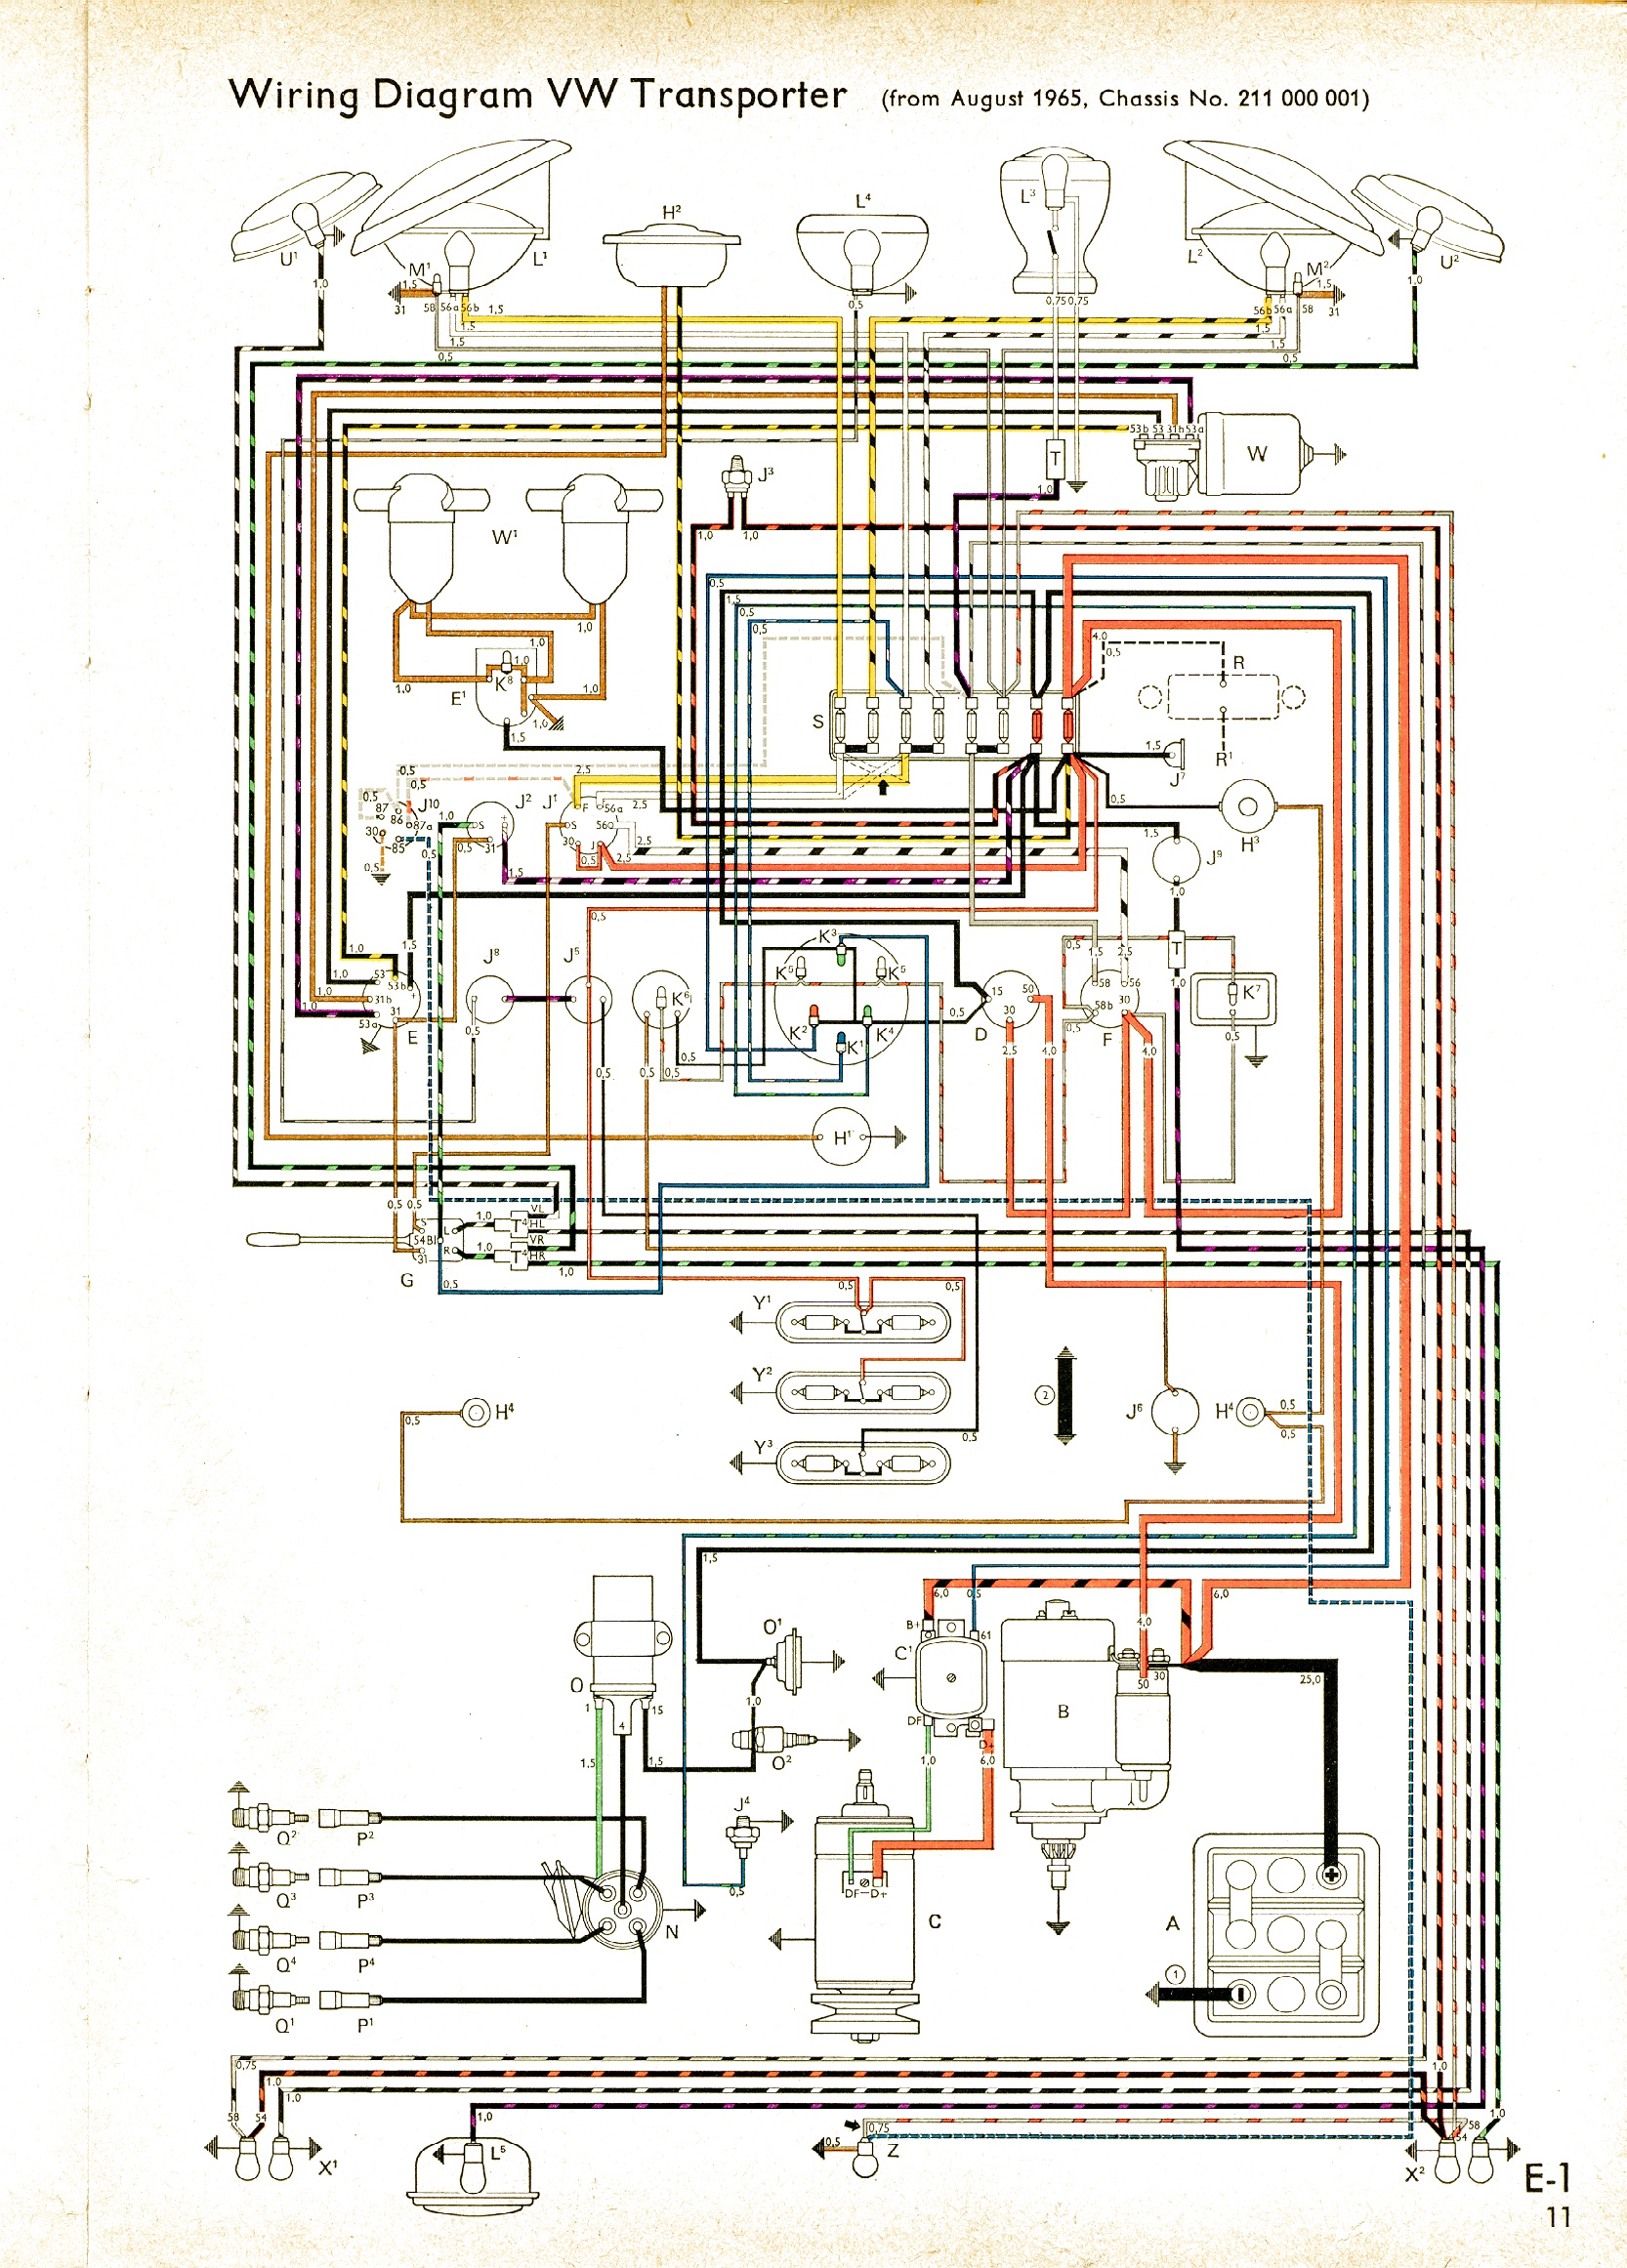 bus 65 bus wiring diagram vw wiring harness diagram \u2022 wiring diagrams j 1971 vw bus wiring diagram at nearapp.co